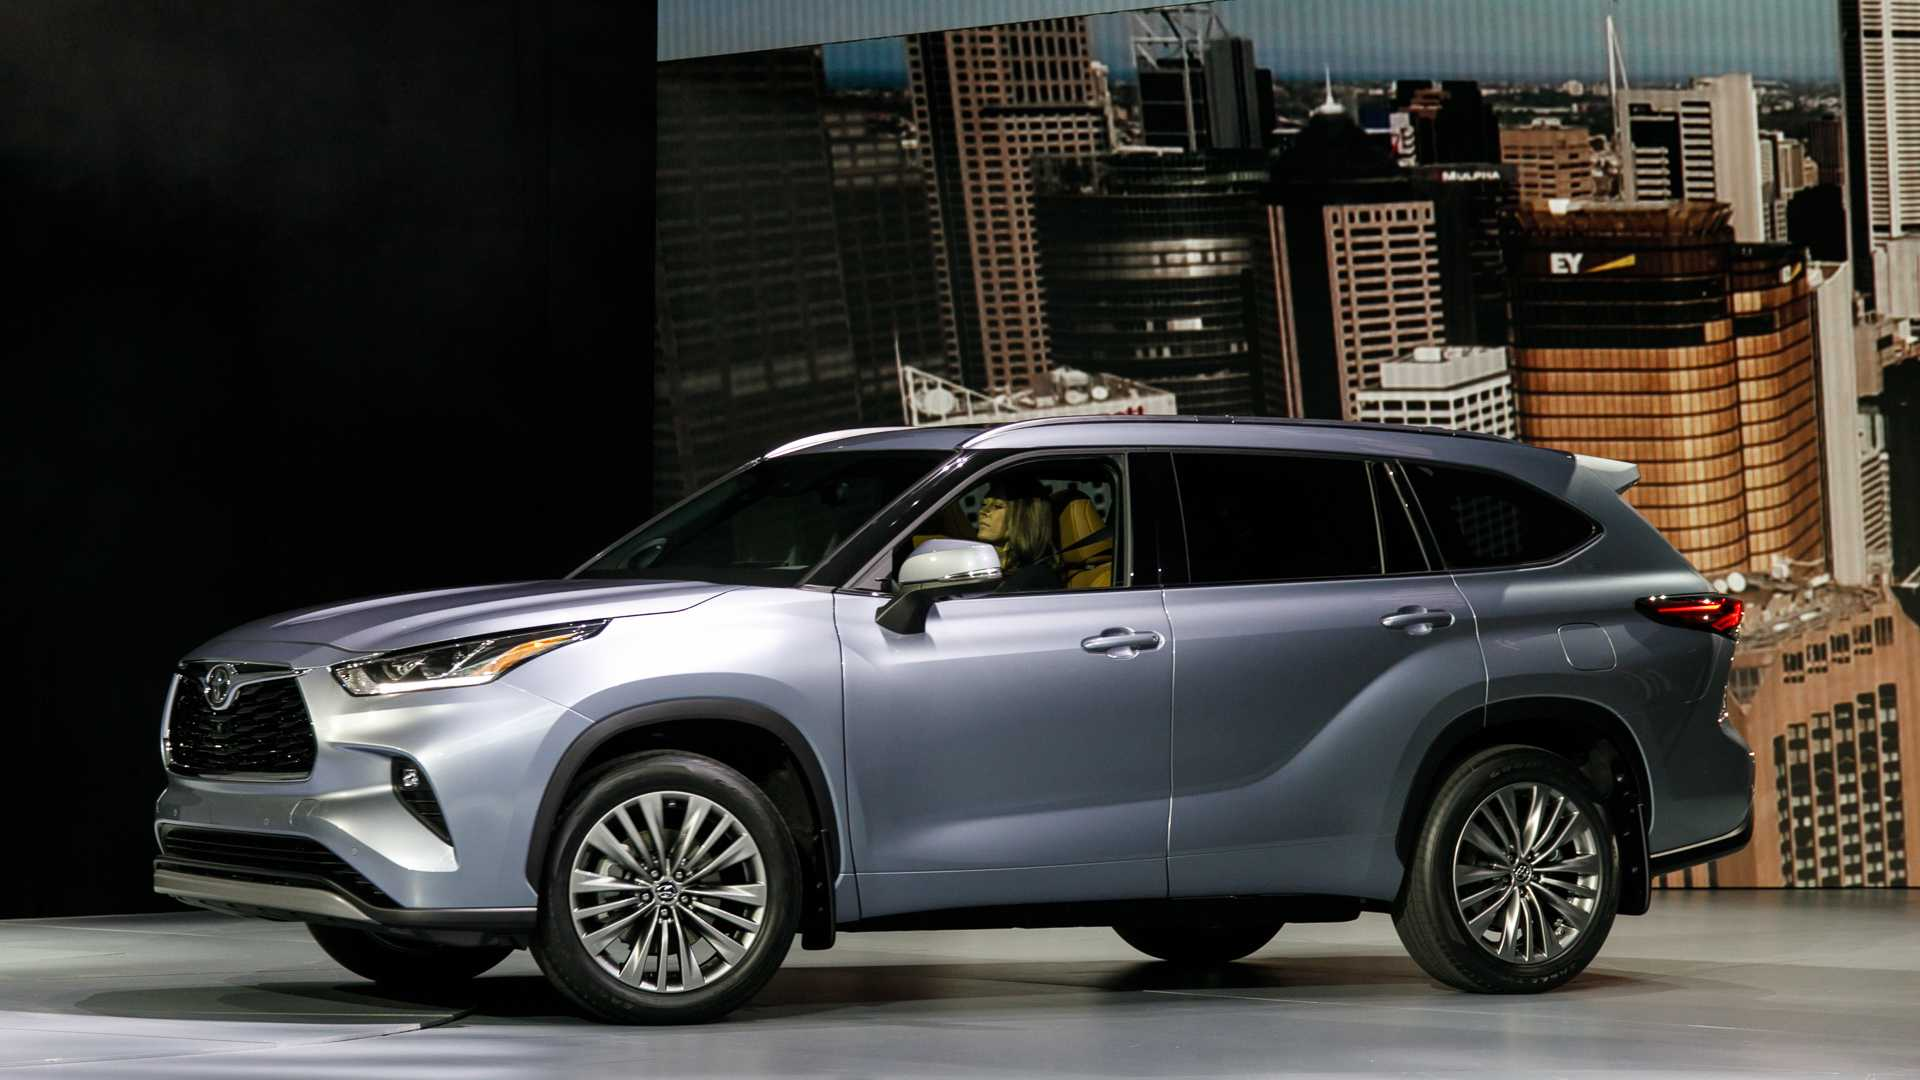 84 Gallery of Toyota Kluger 2020 Australia Release Date Interior with Toyota Kluger 2020 Australia Release Date